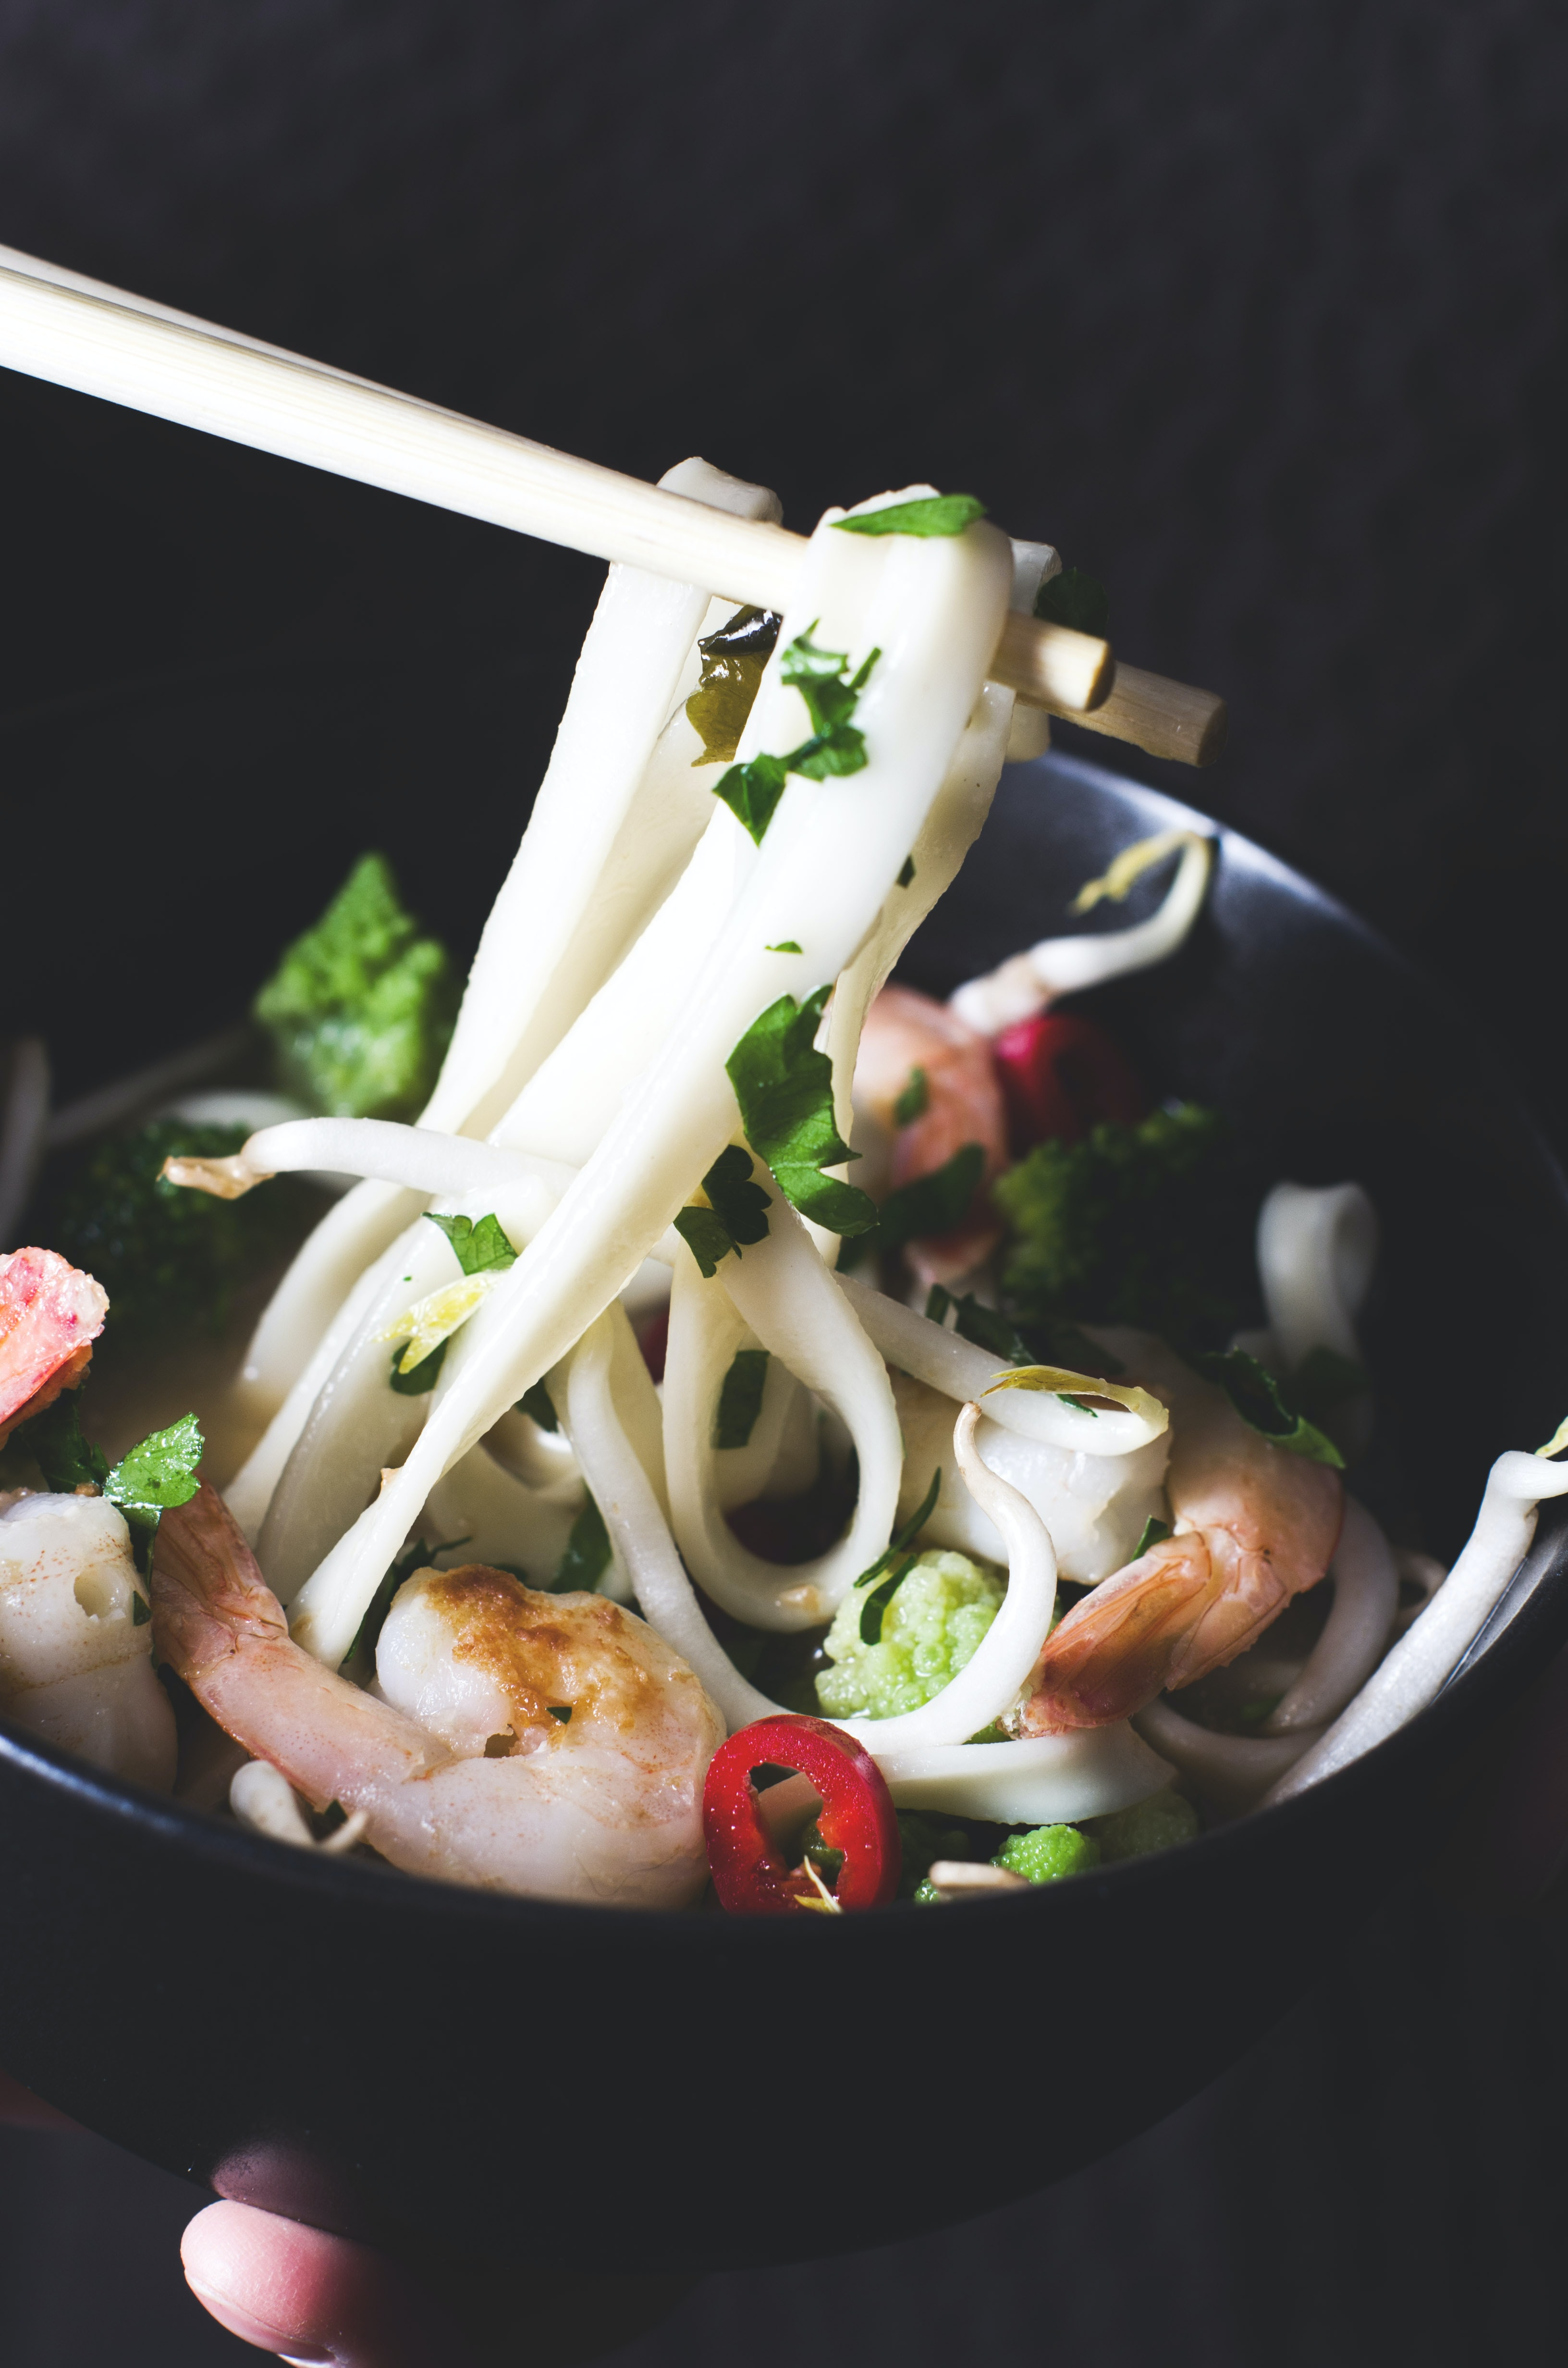 Chopsticks pick up noodles from a bowl full of shrimp and herbs